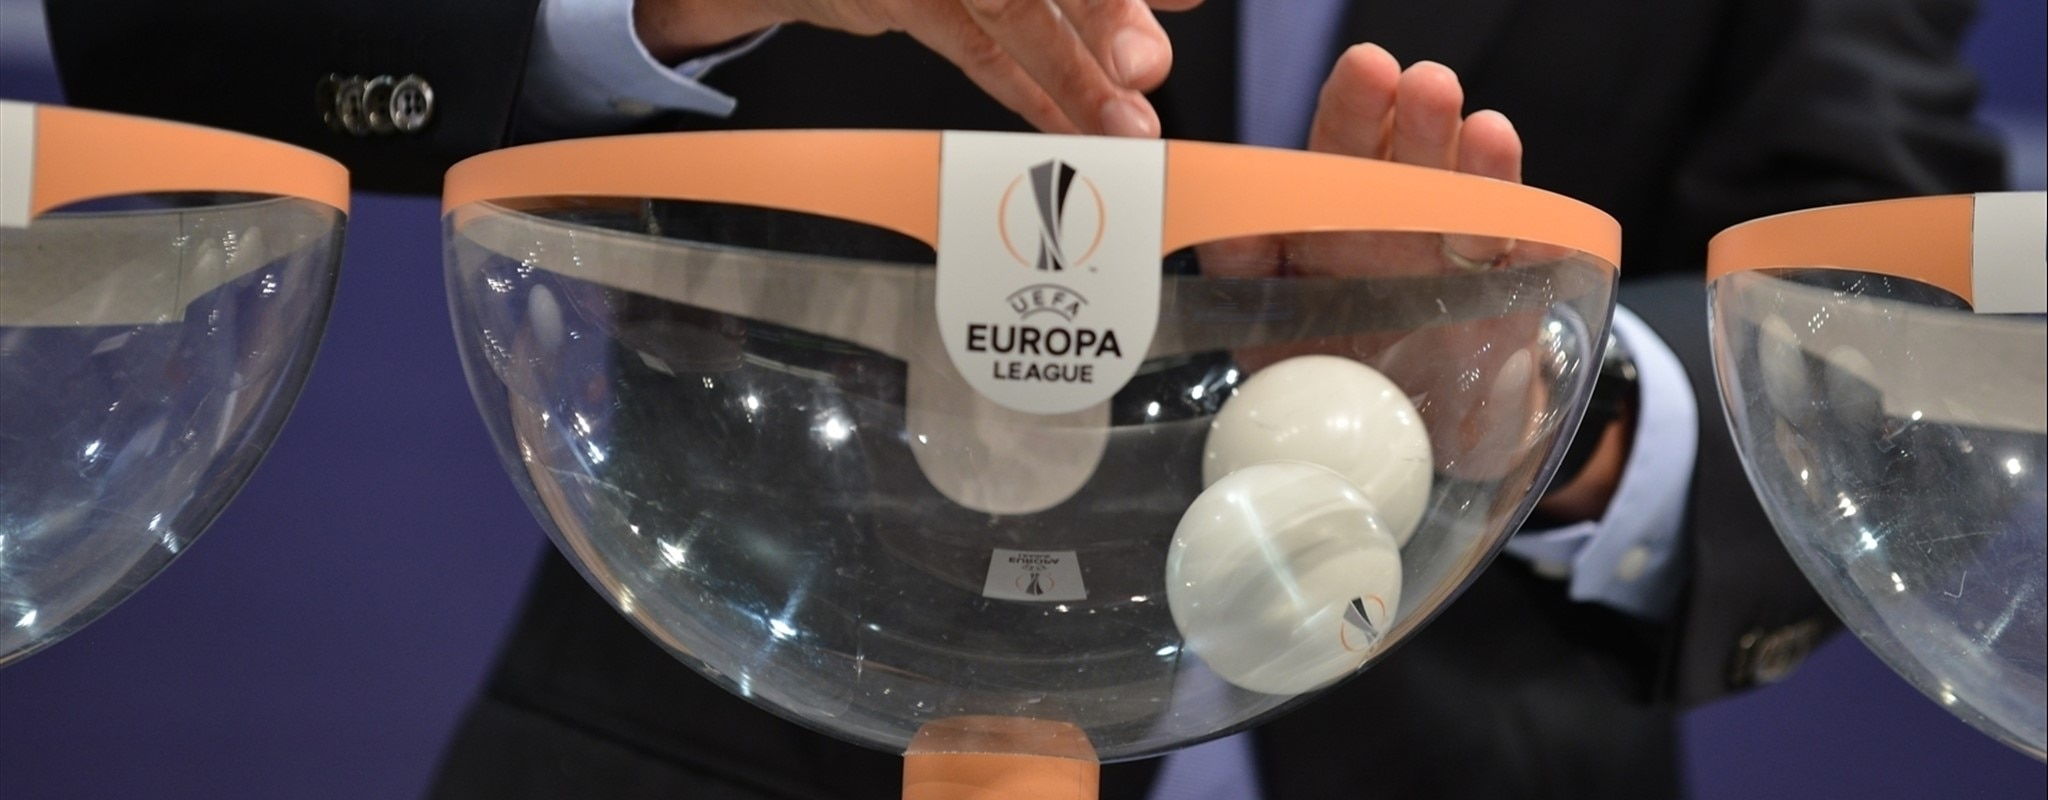 Europa League first and second qualifying round draws